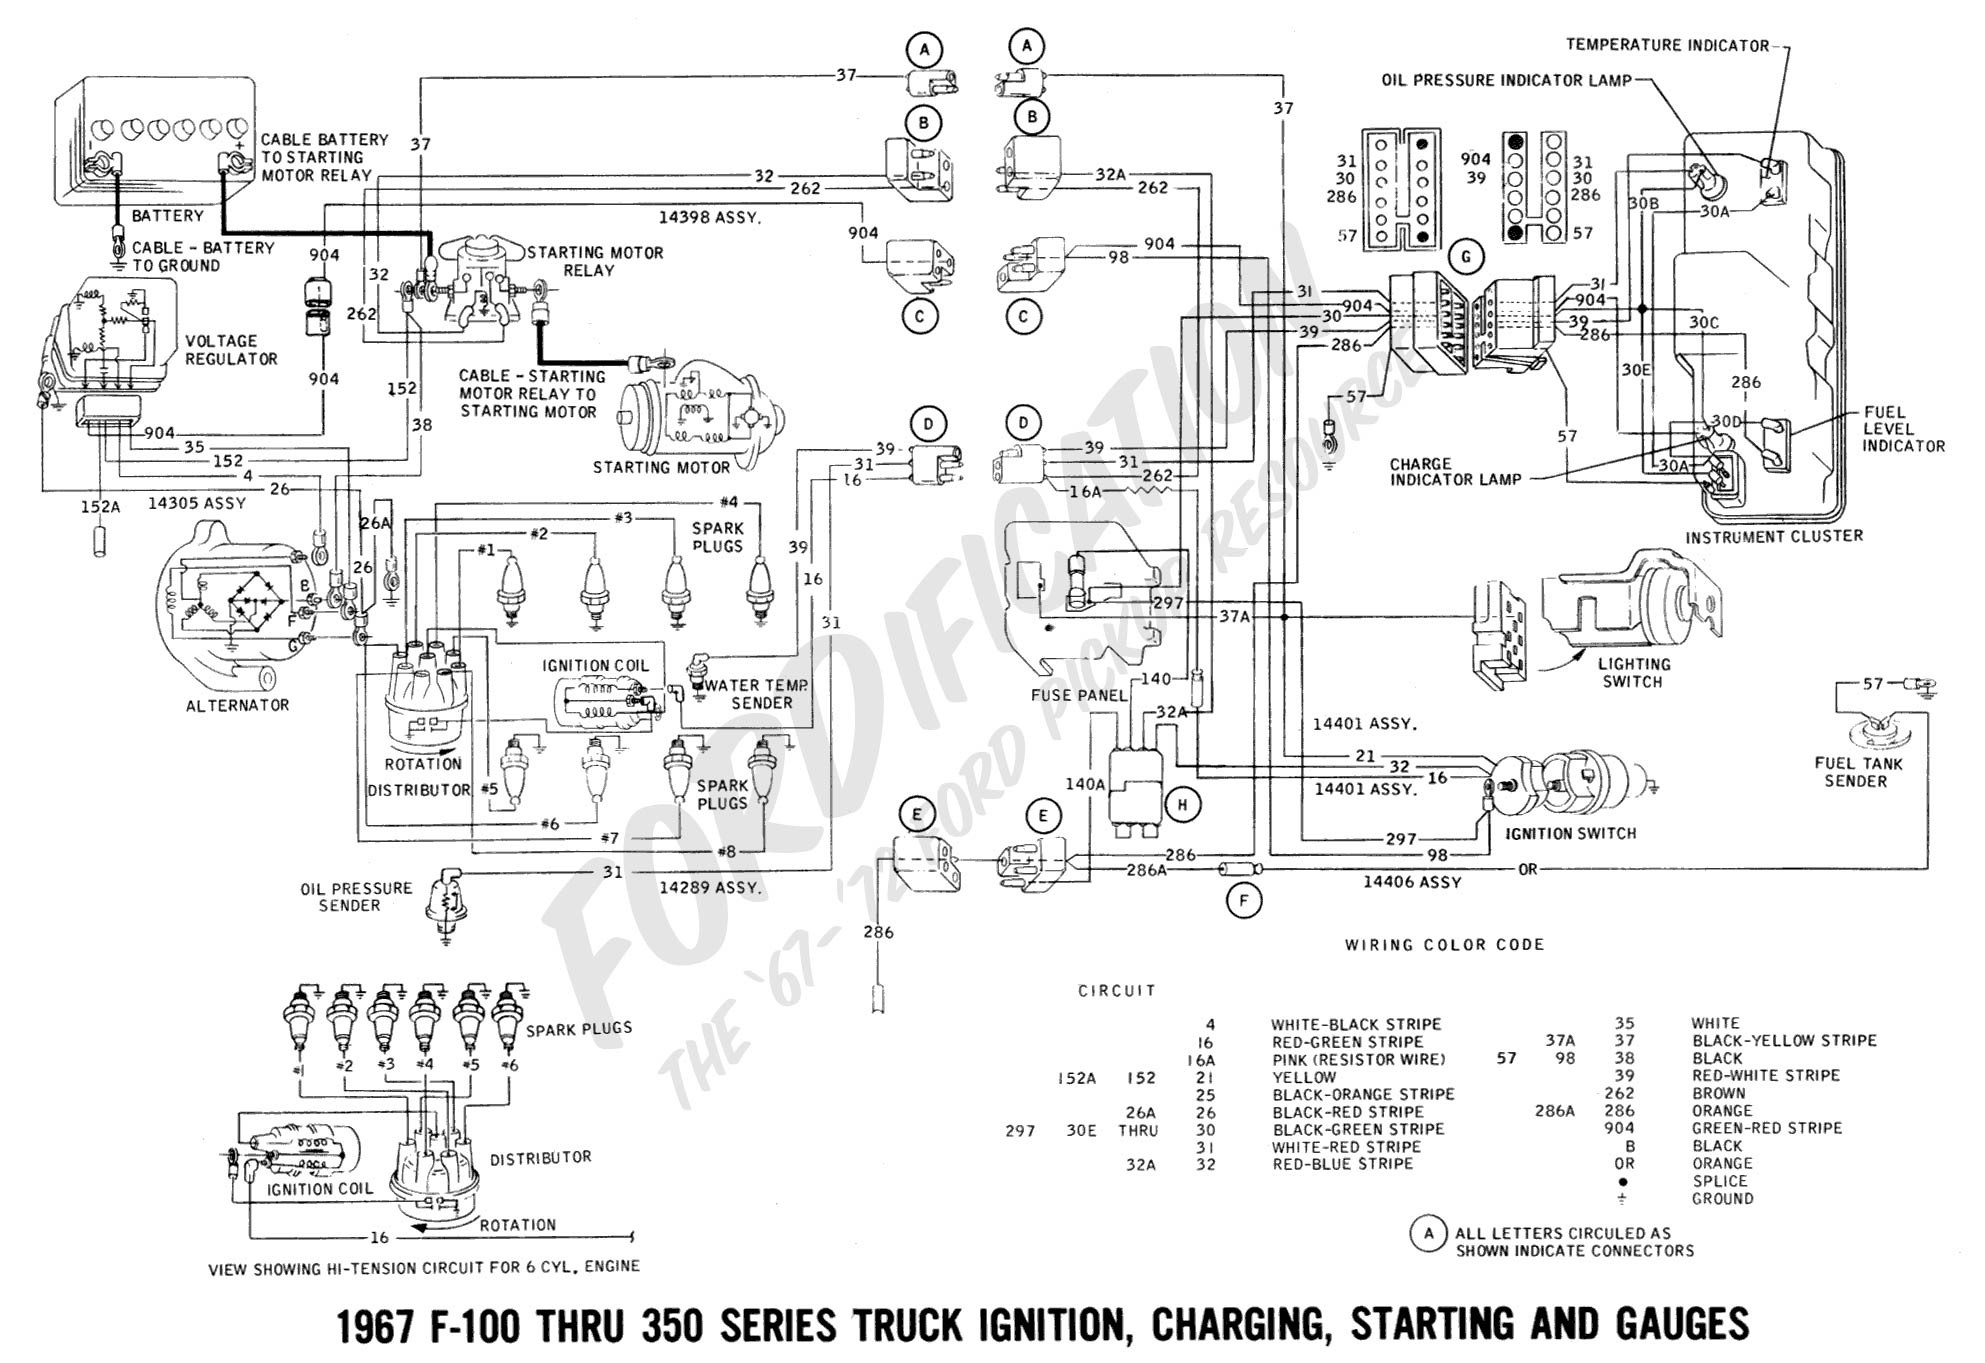 2004 ford Explorer Engine Diagram ford Ignition Switch Wiring Diagram F350 Battery Wiring Diagram Of 2004 ford Explorer Engine Diagram